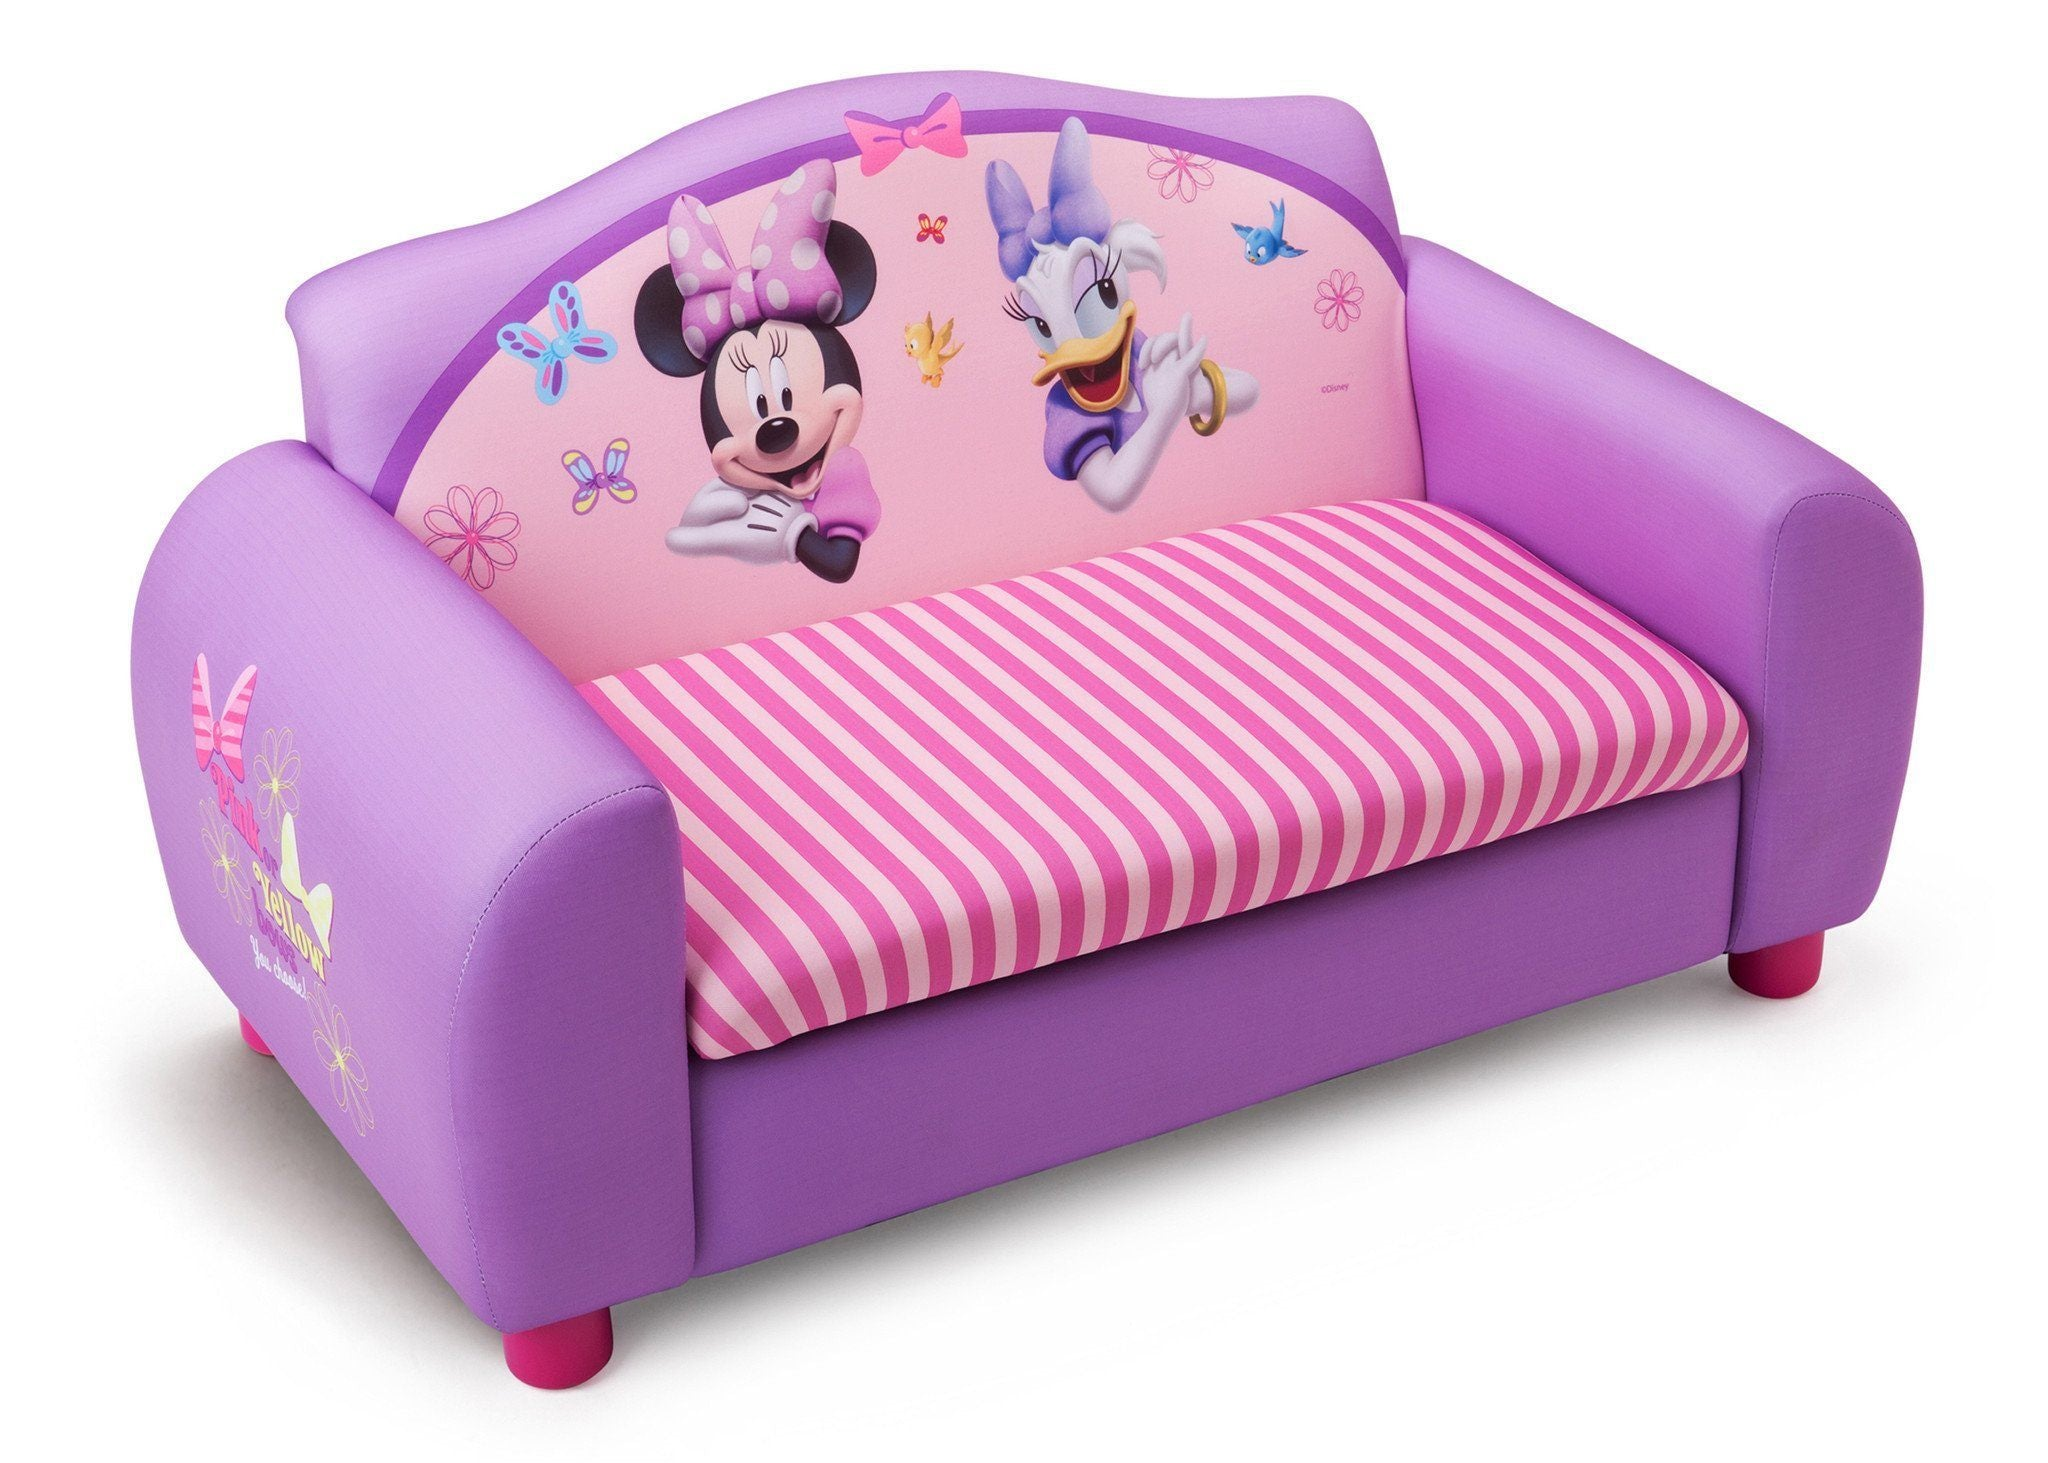 Genial Delta Children Minnie Mouse Upholstered Sofa Right Side View A1a ...